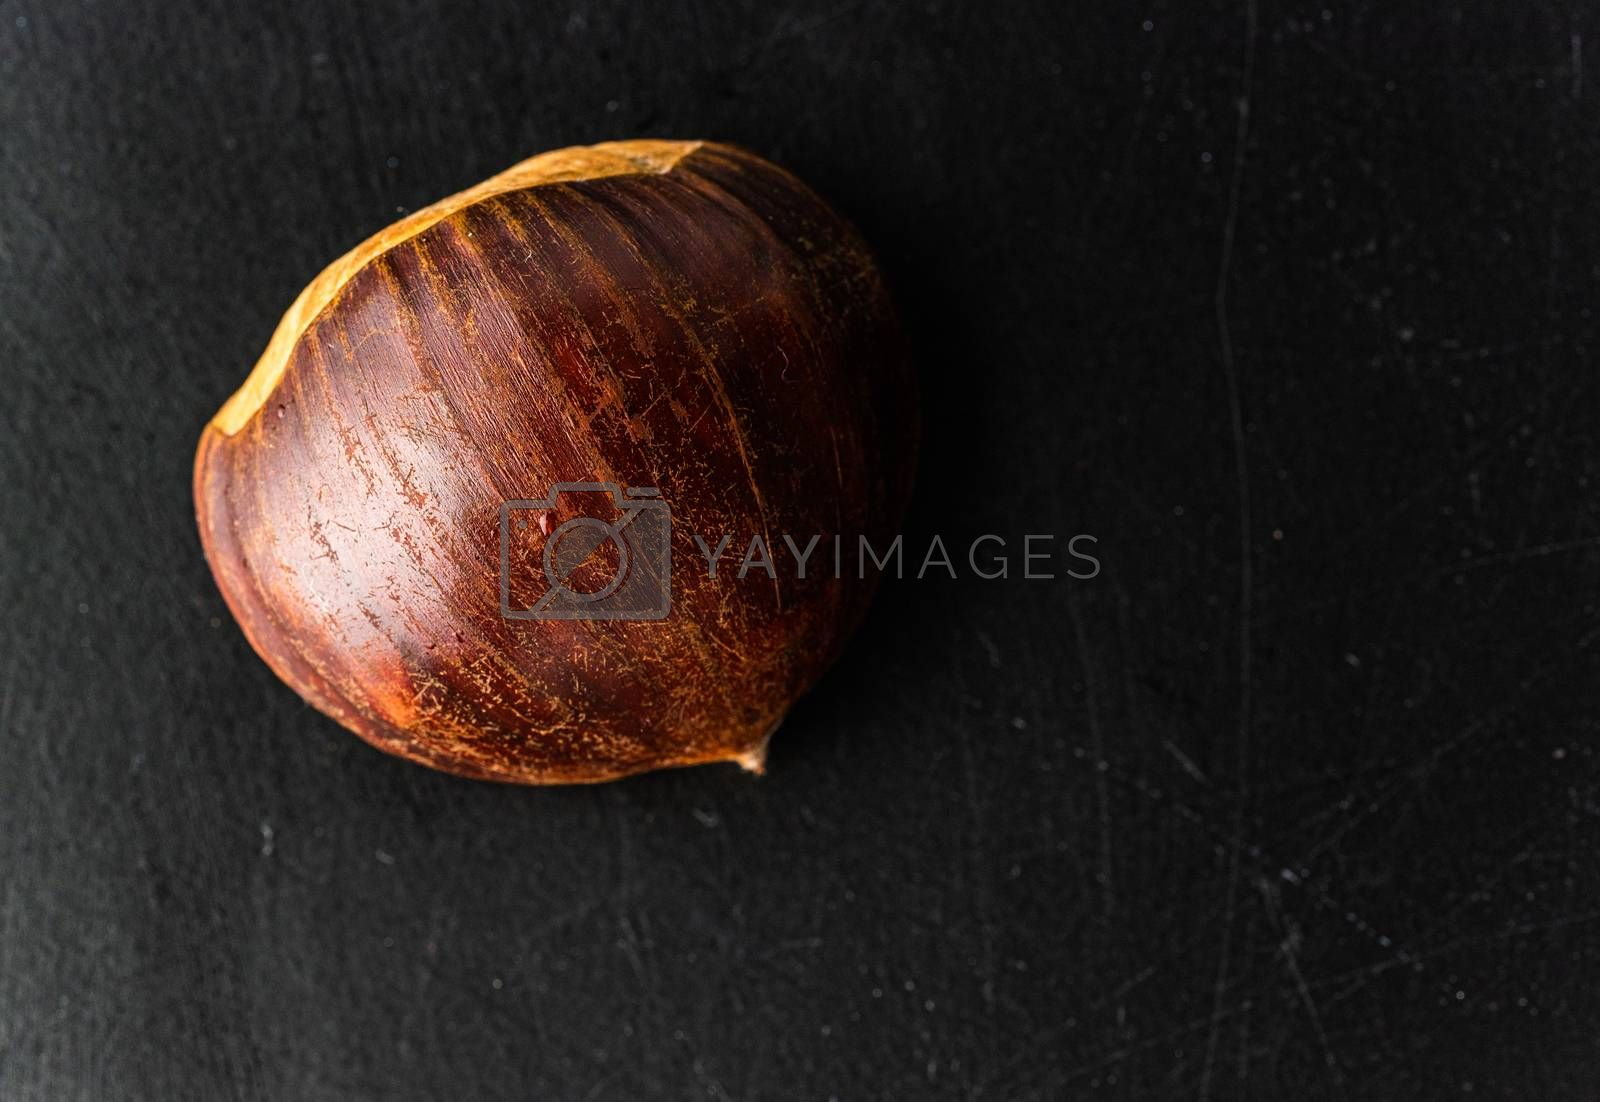 Fresh one chestnut isolated on black background. Copyspace top view closeup.